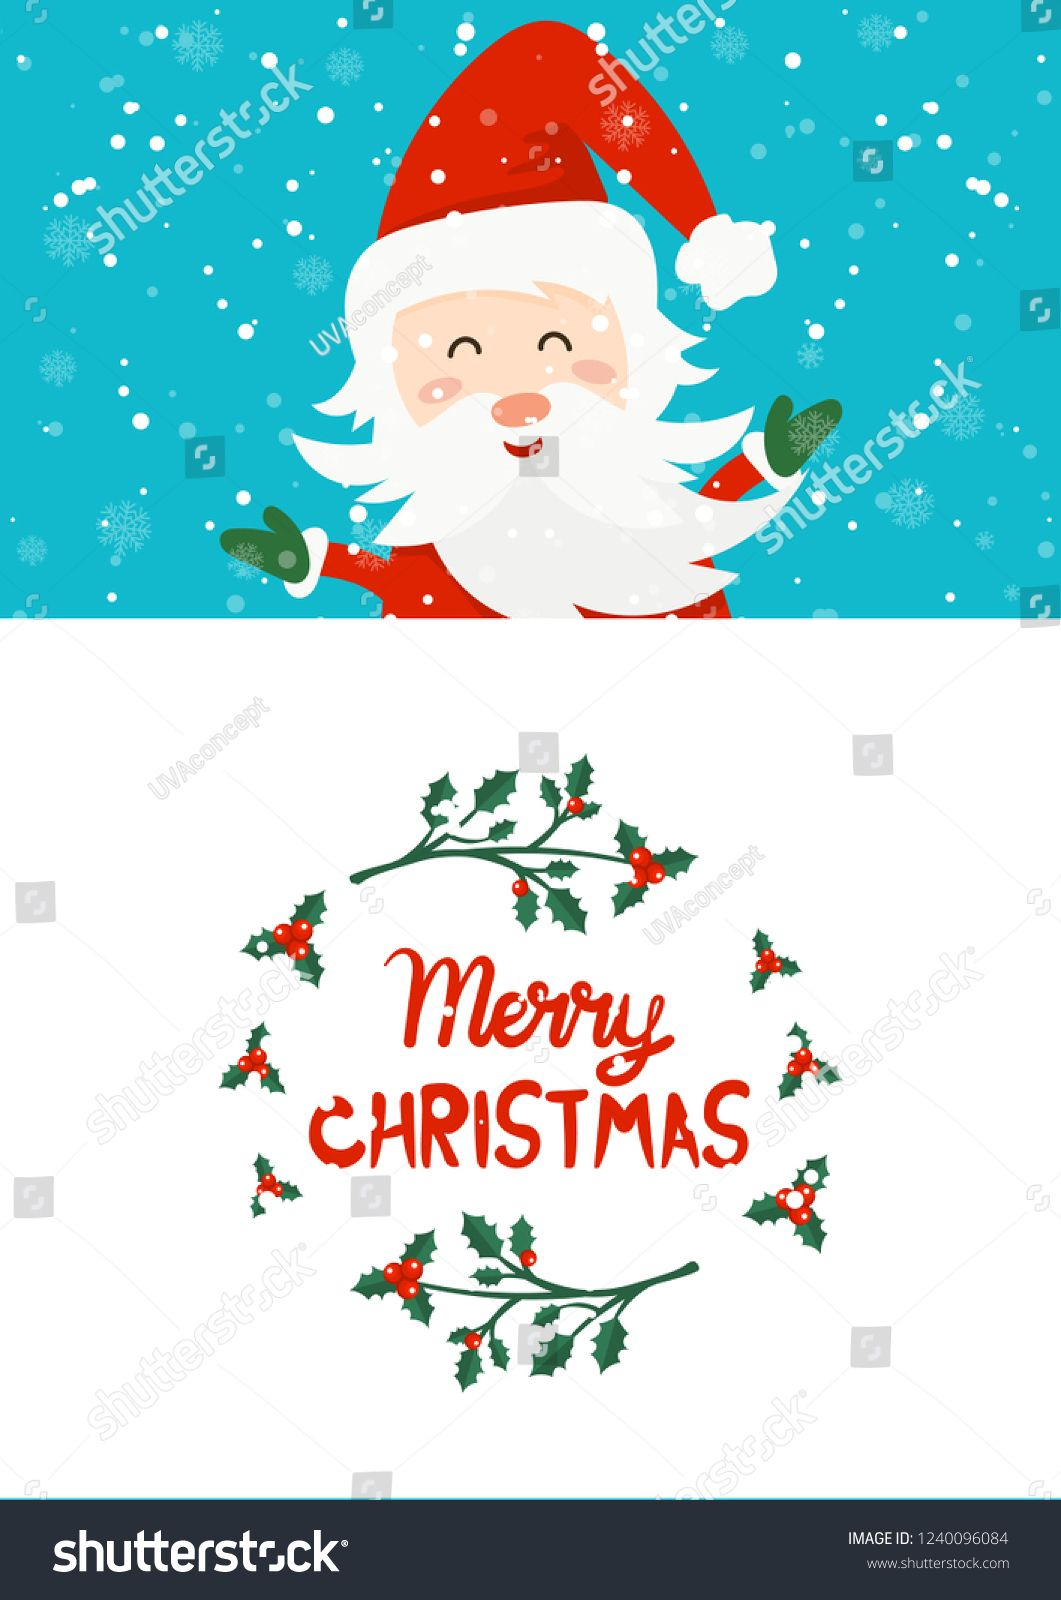 Merry Christmas and Happy New Year winter holidays